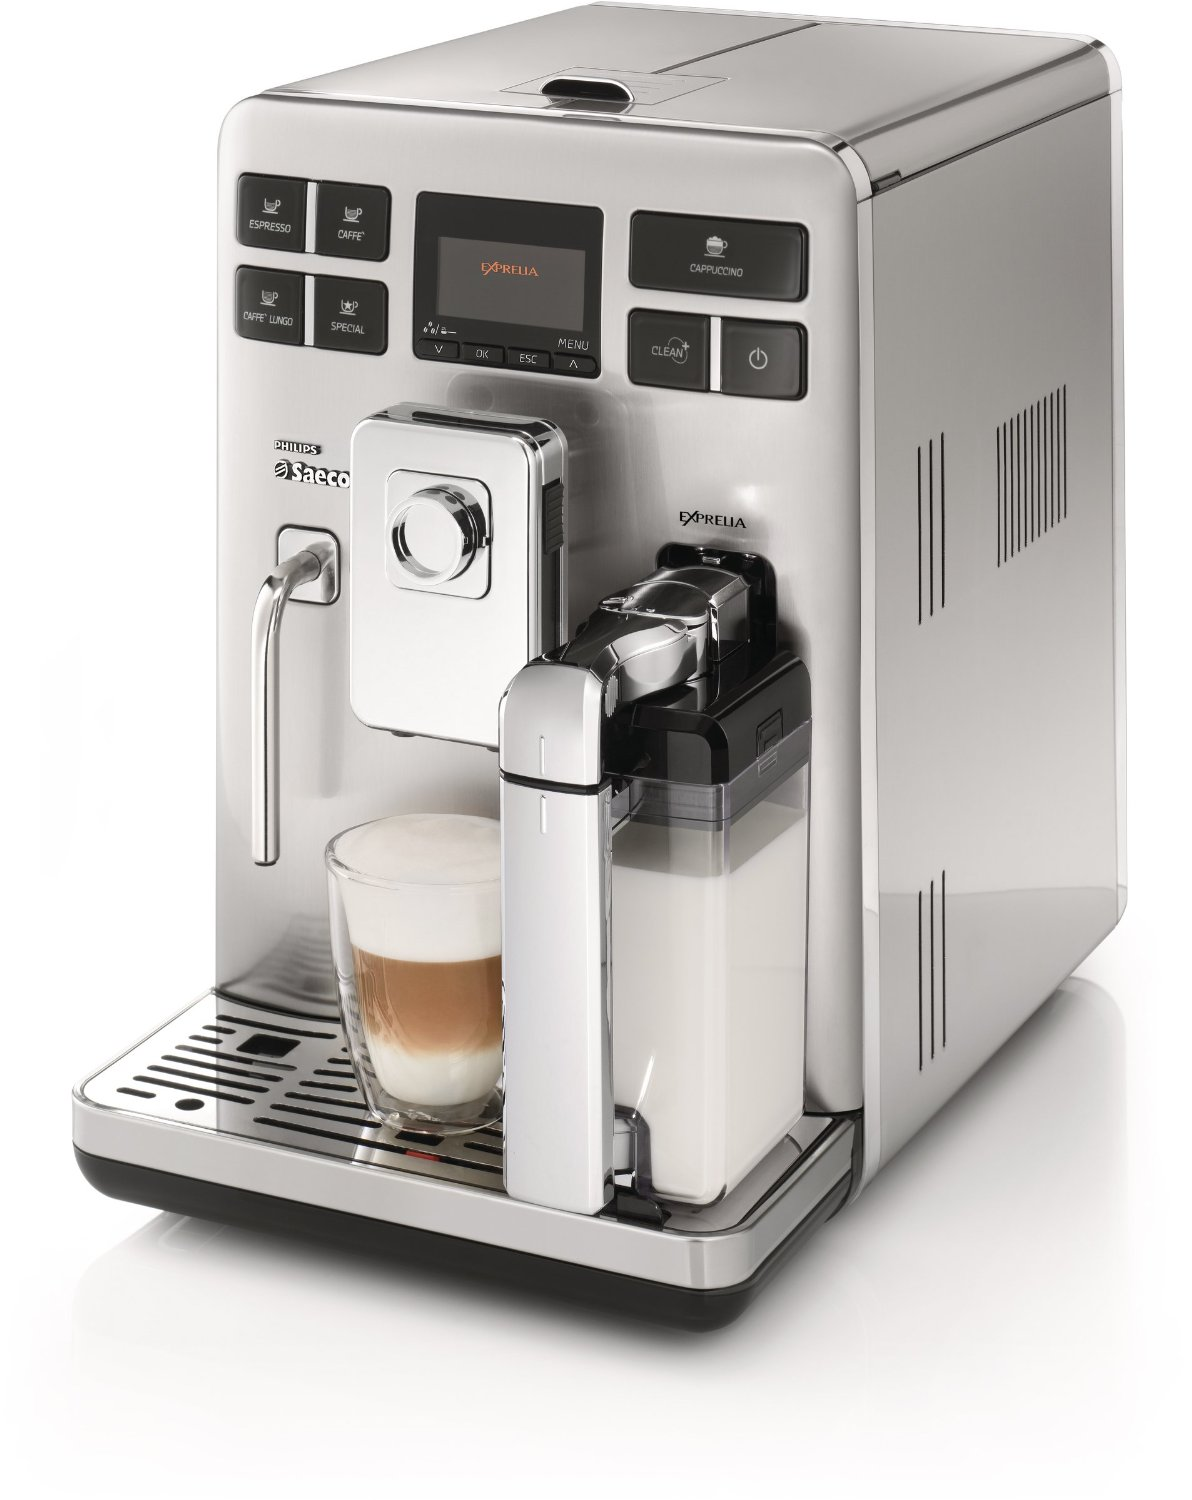 saeco automatic espresso machine